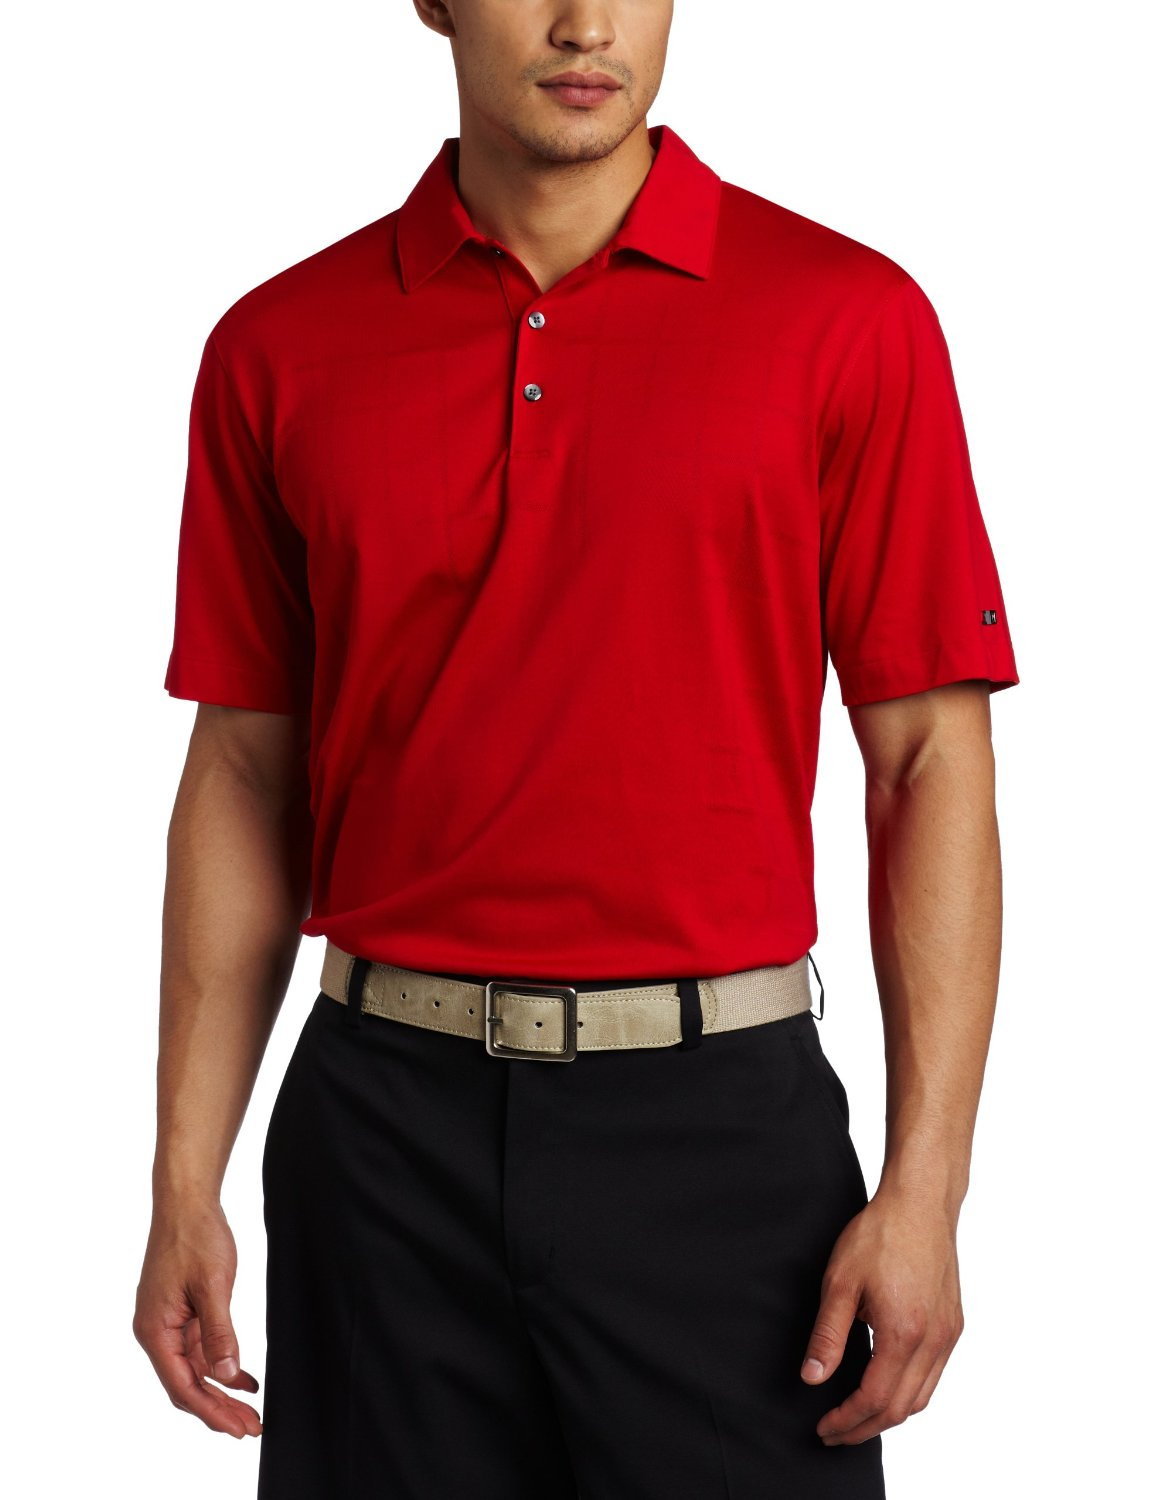 Men 39 s style archives styleassisted for Big tall nike golf shirts